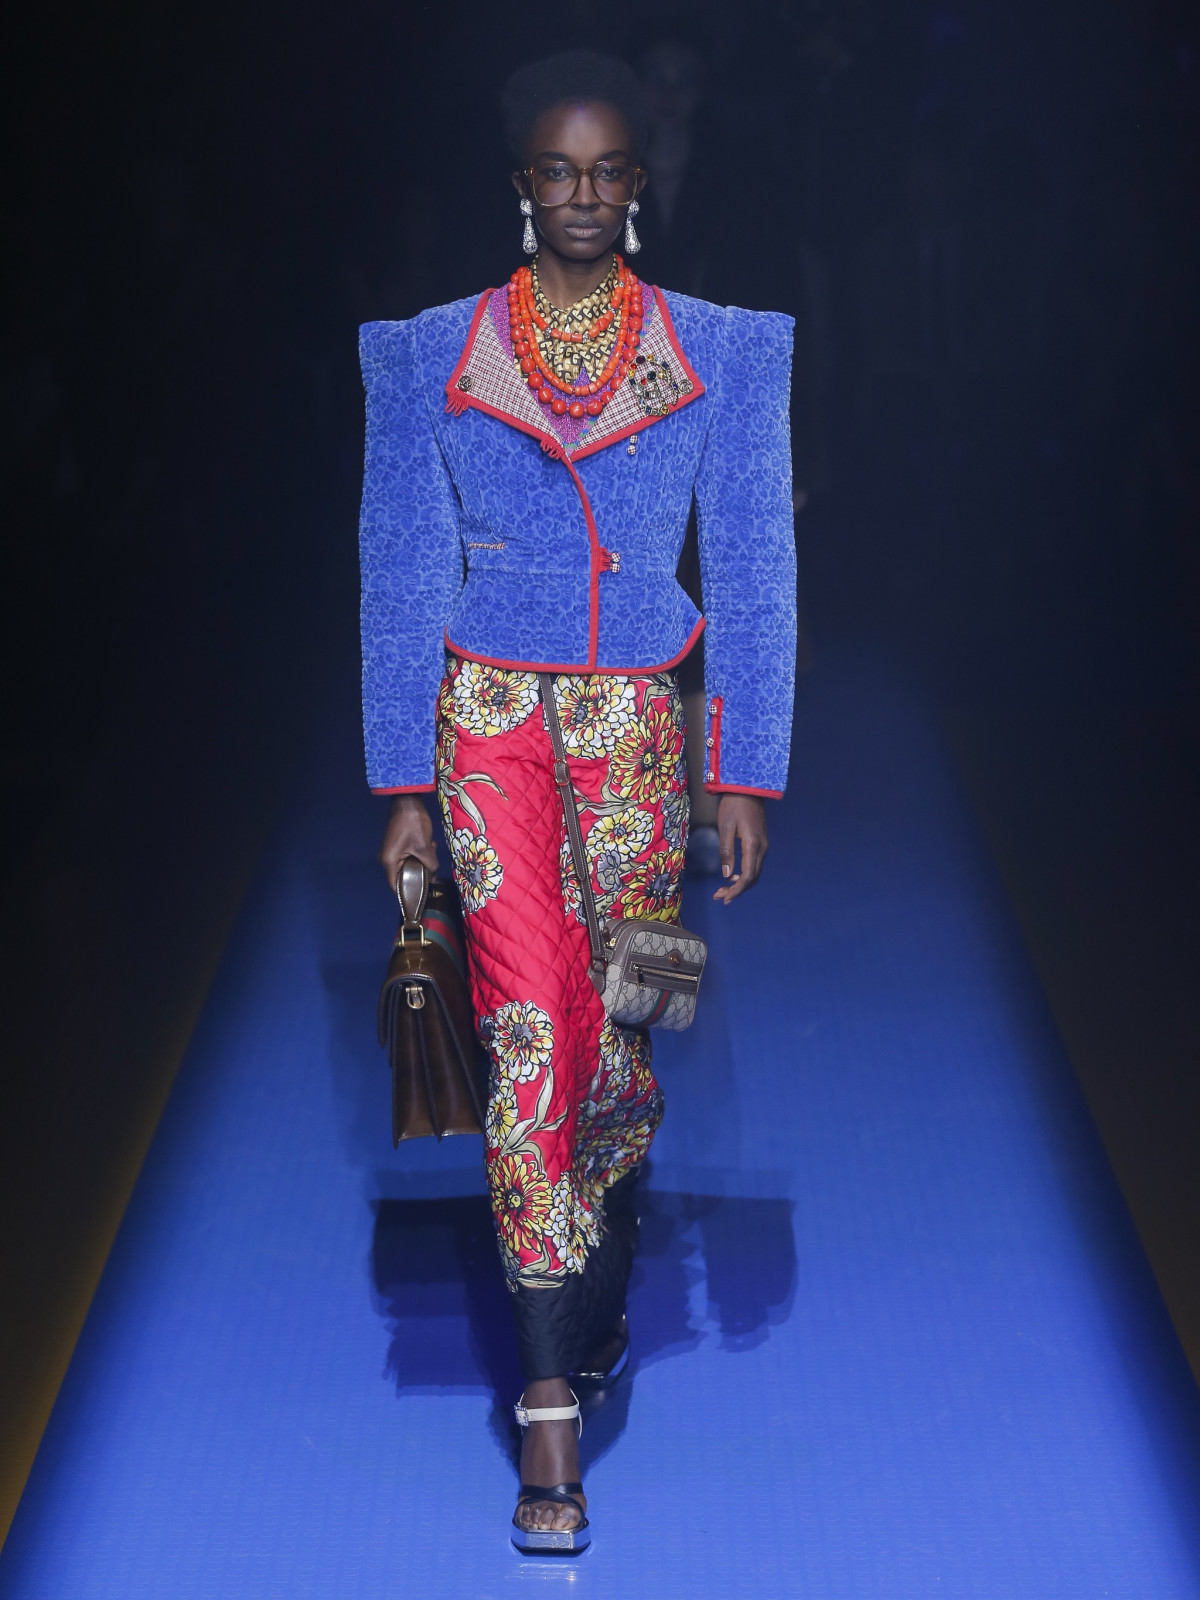 f1ffc8ef005 Milan Fashion Week: 39 cool looks from Gucci, Prada, Fendi, and more ...